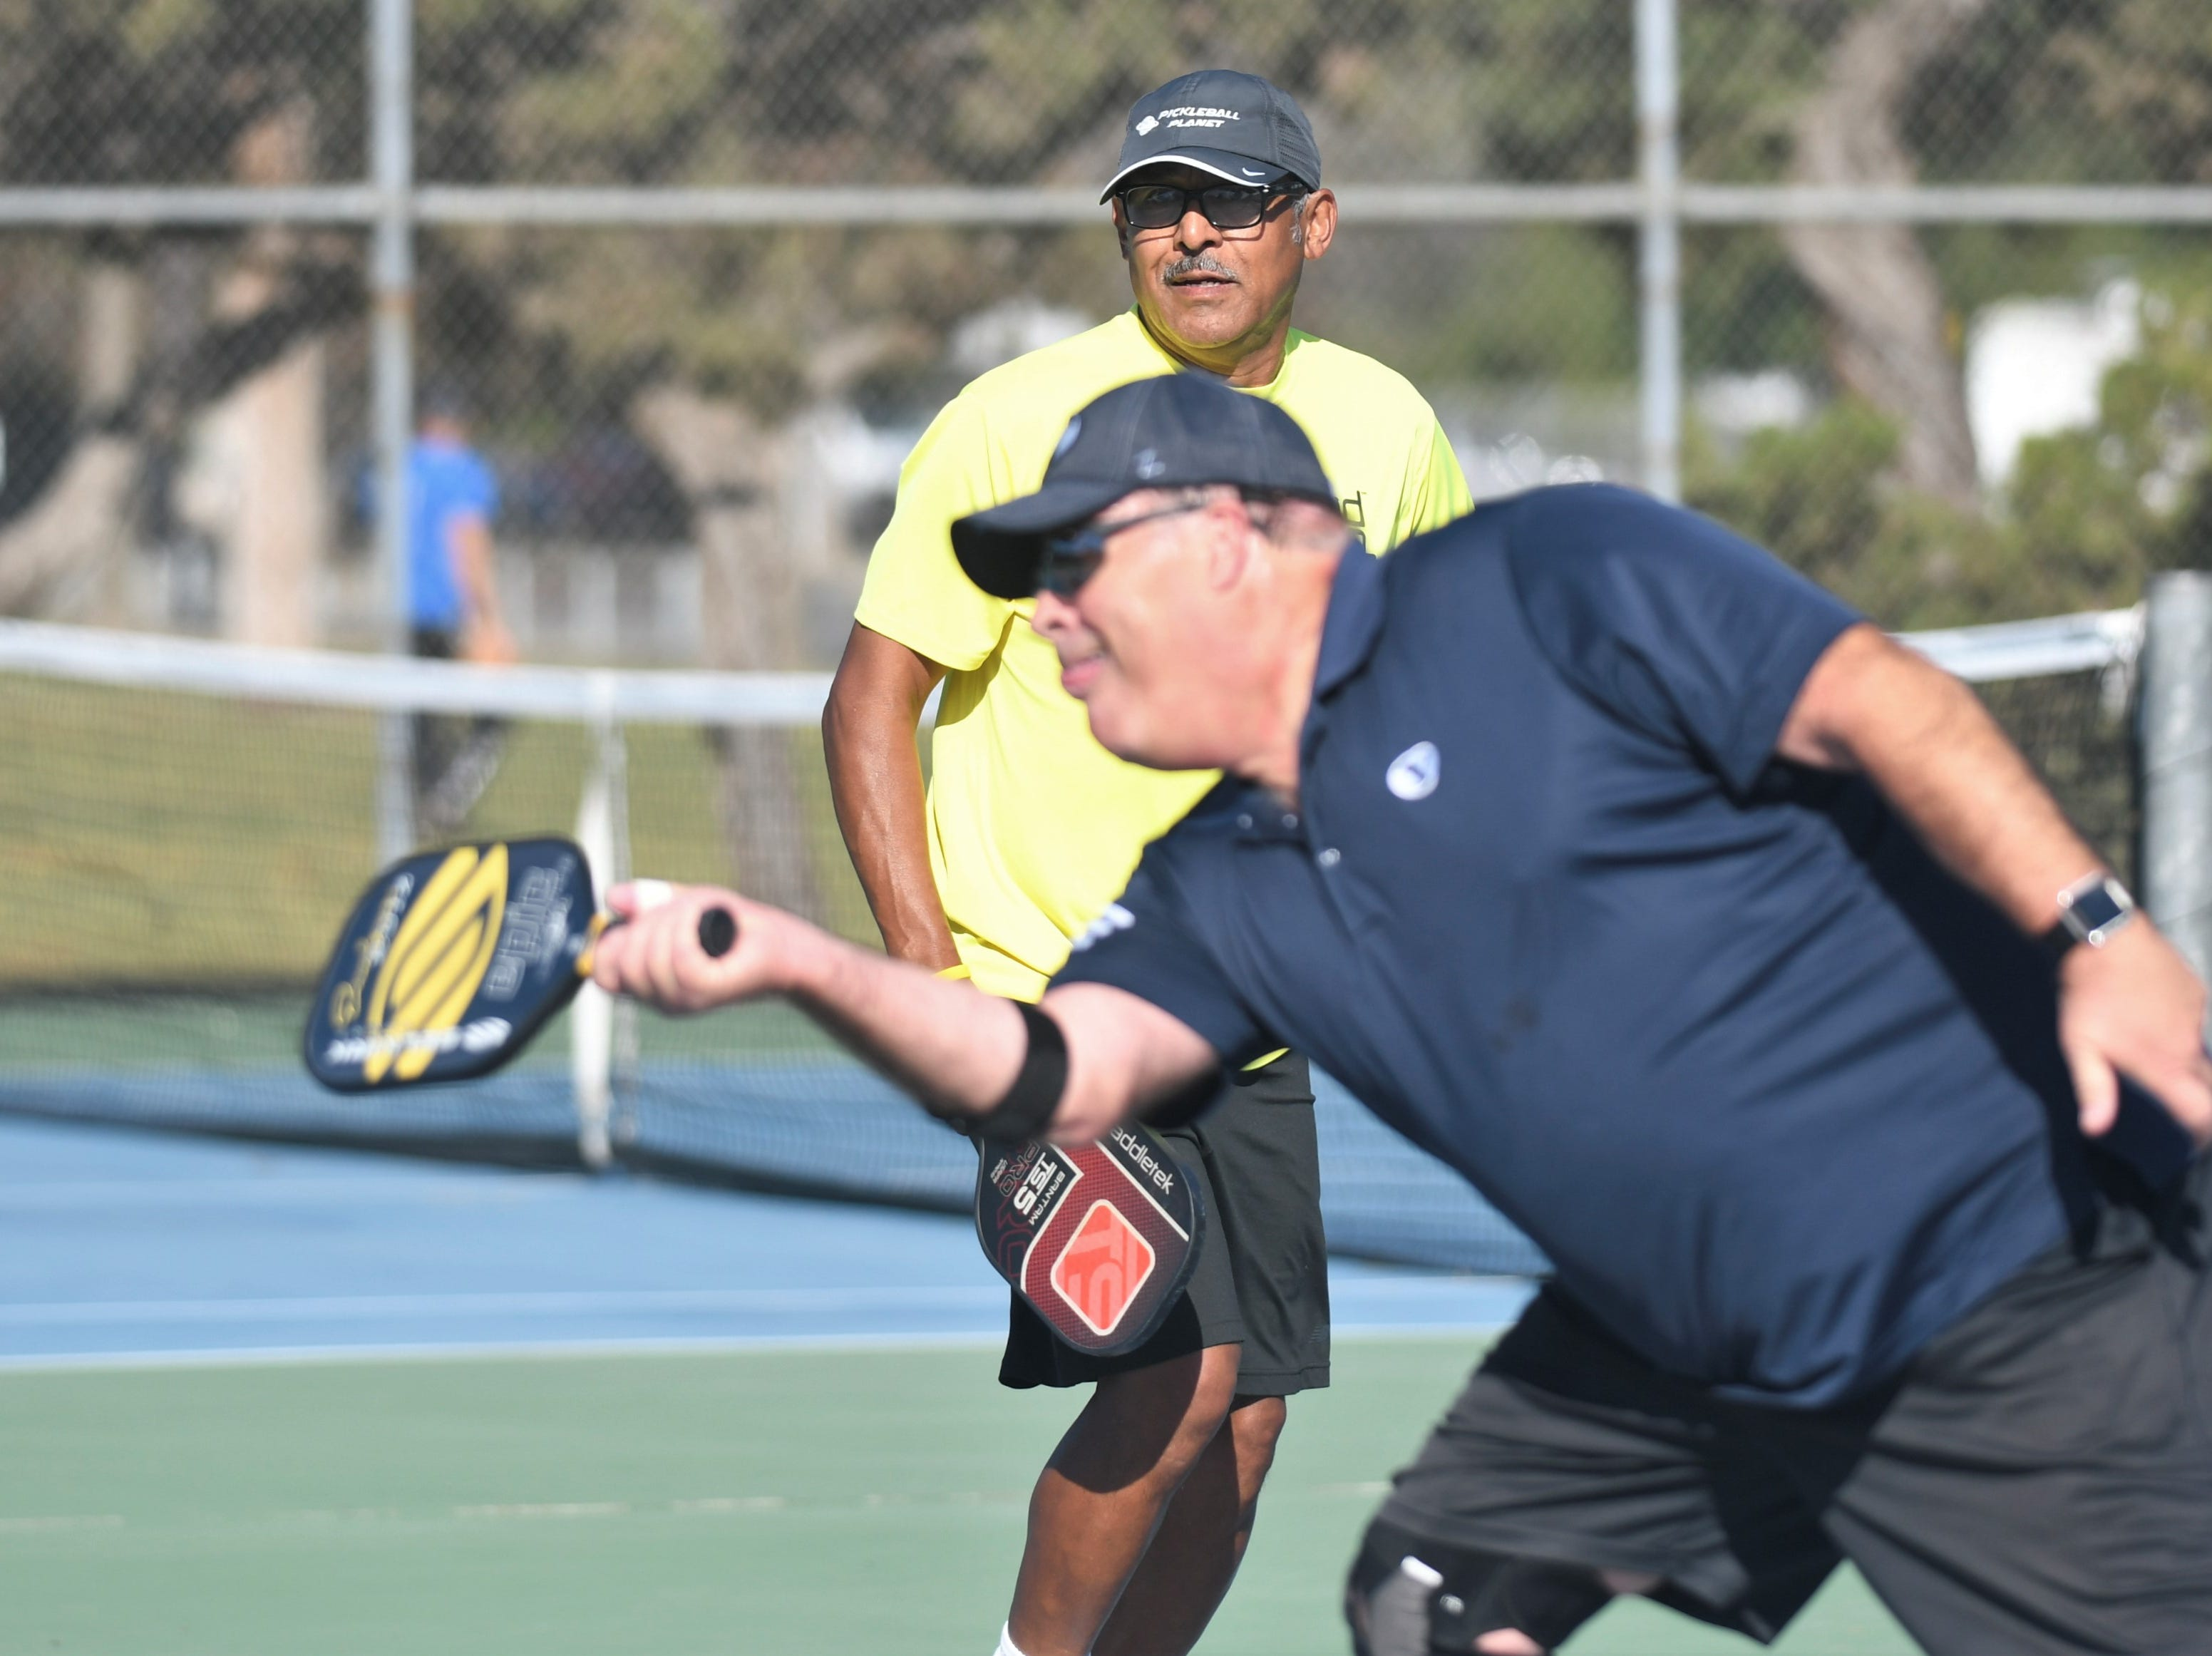 Over the last two weekends, hundreds competed in Visalia Parks and Recreation 2019 Senior Games. Athletes competed in 15 different events including archery, pickleball, softball, swimming, and trap shoot.